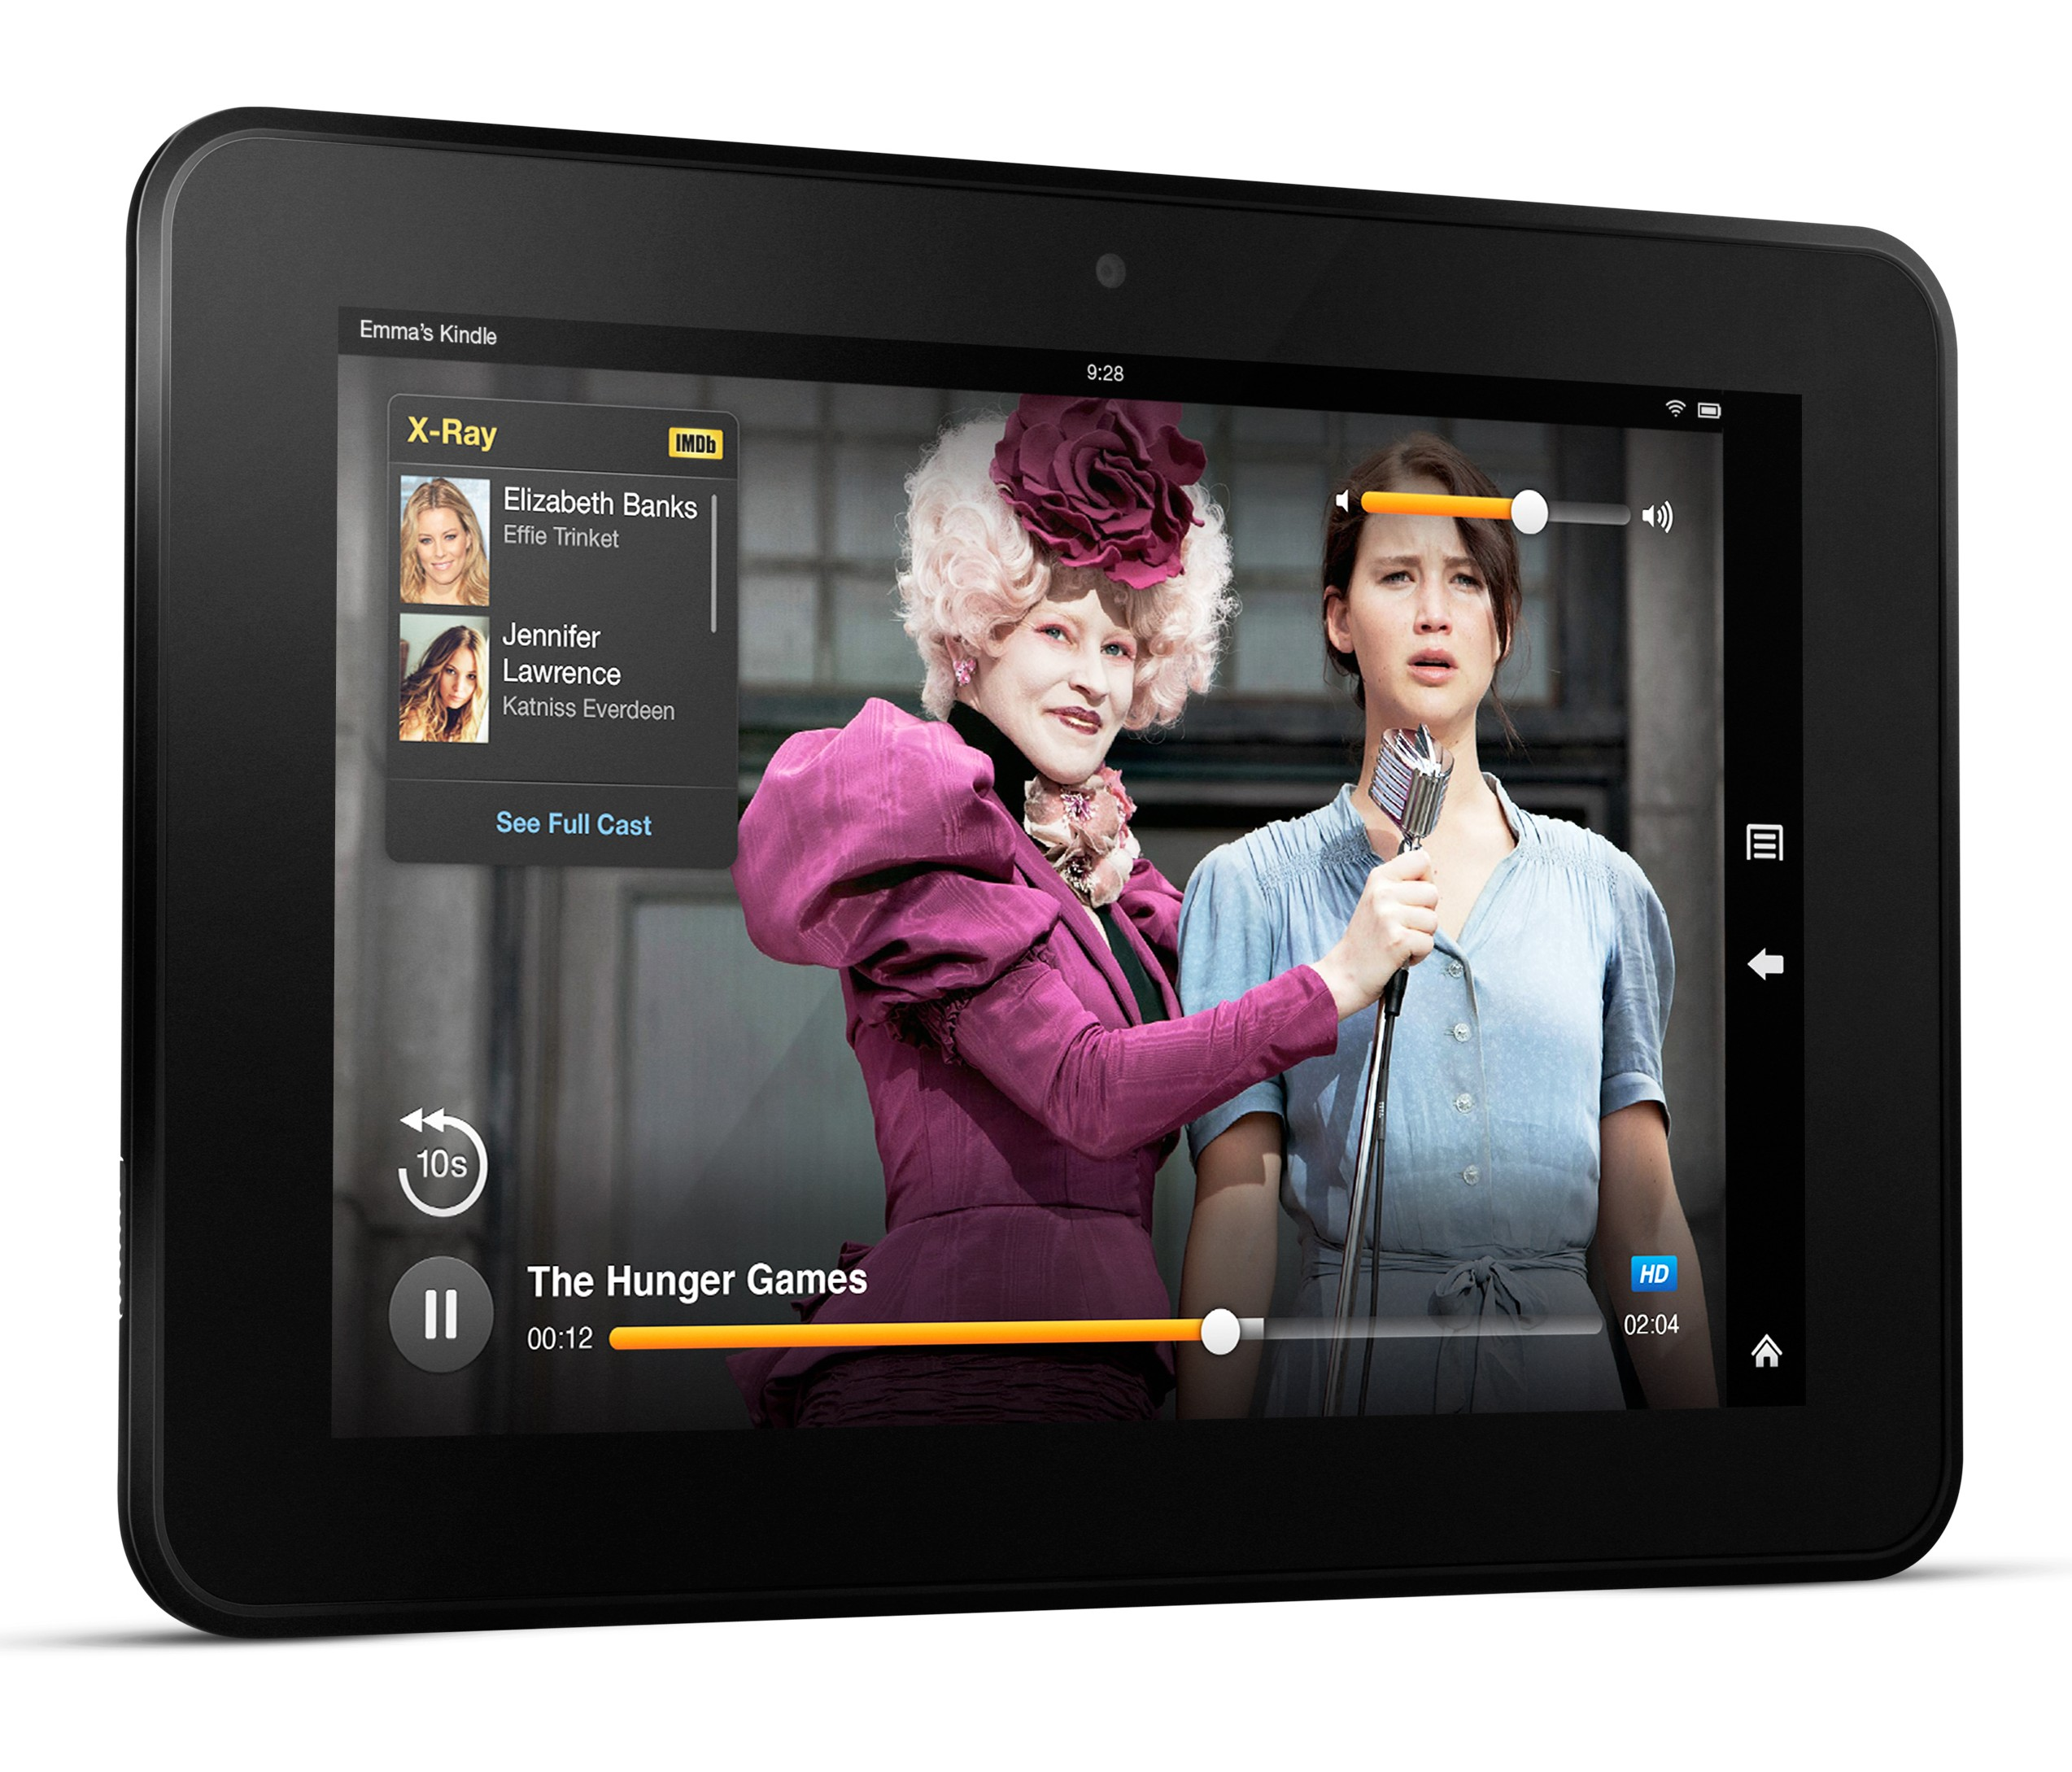 Kindle Fire HD with X-Ray